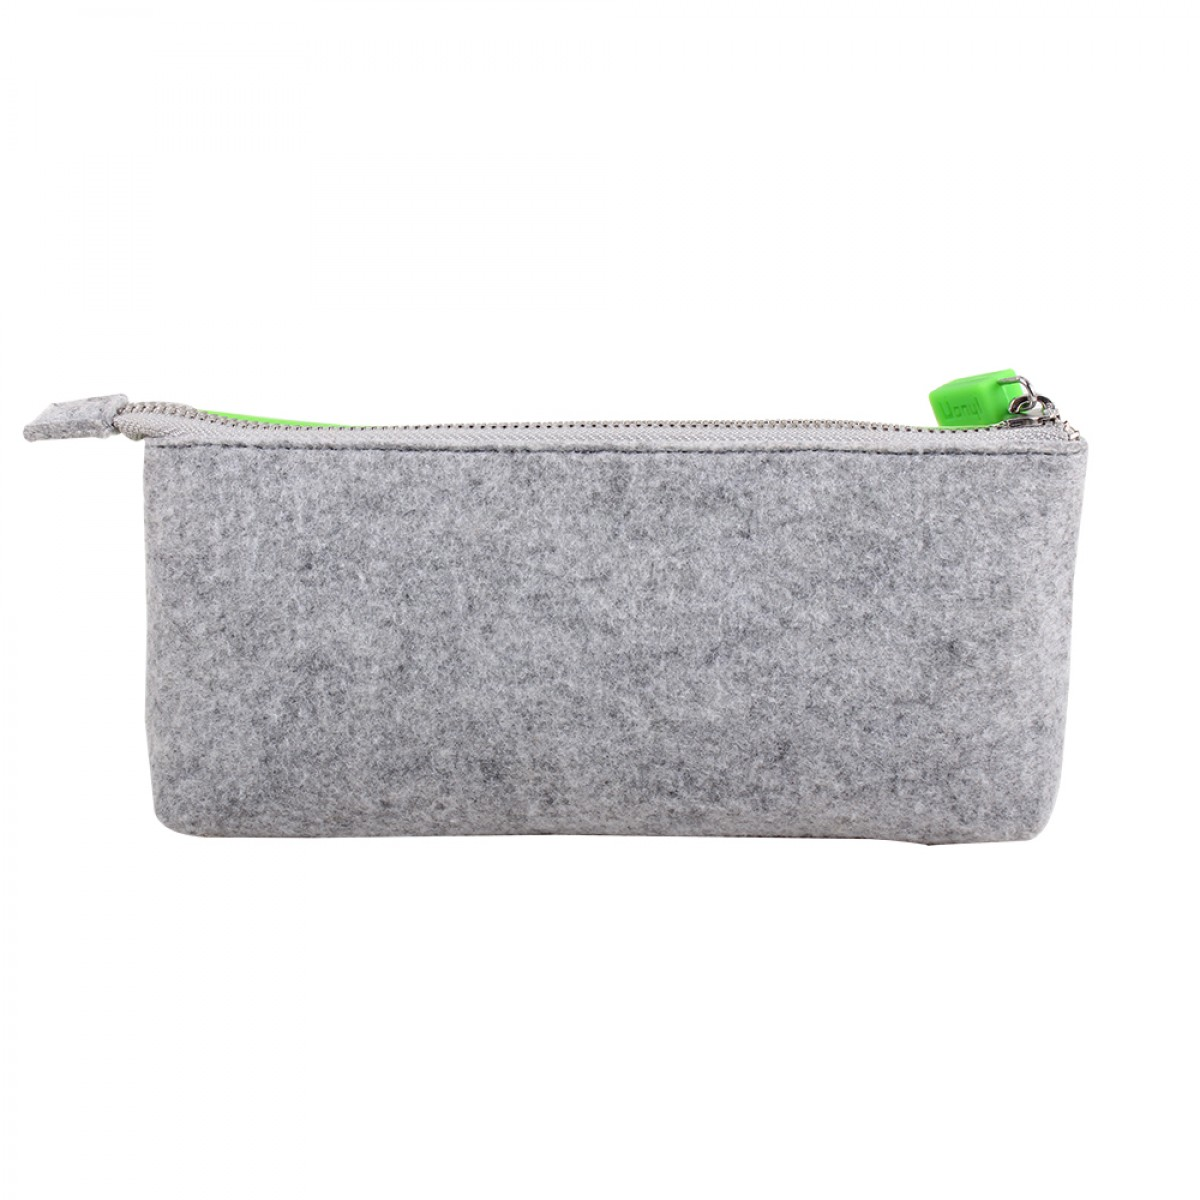 UPixel Pencil Case - Green